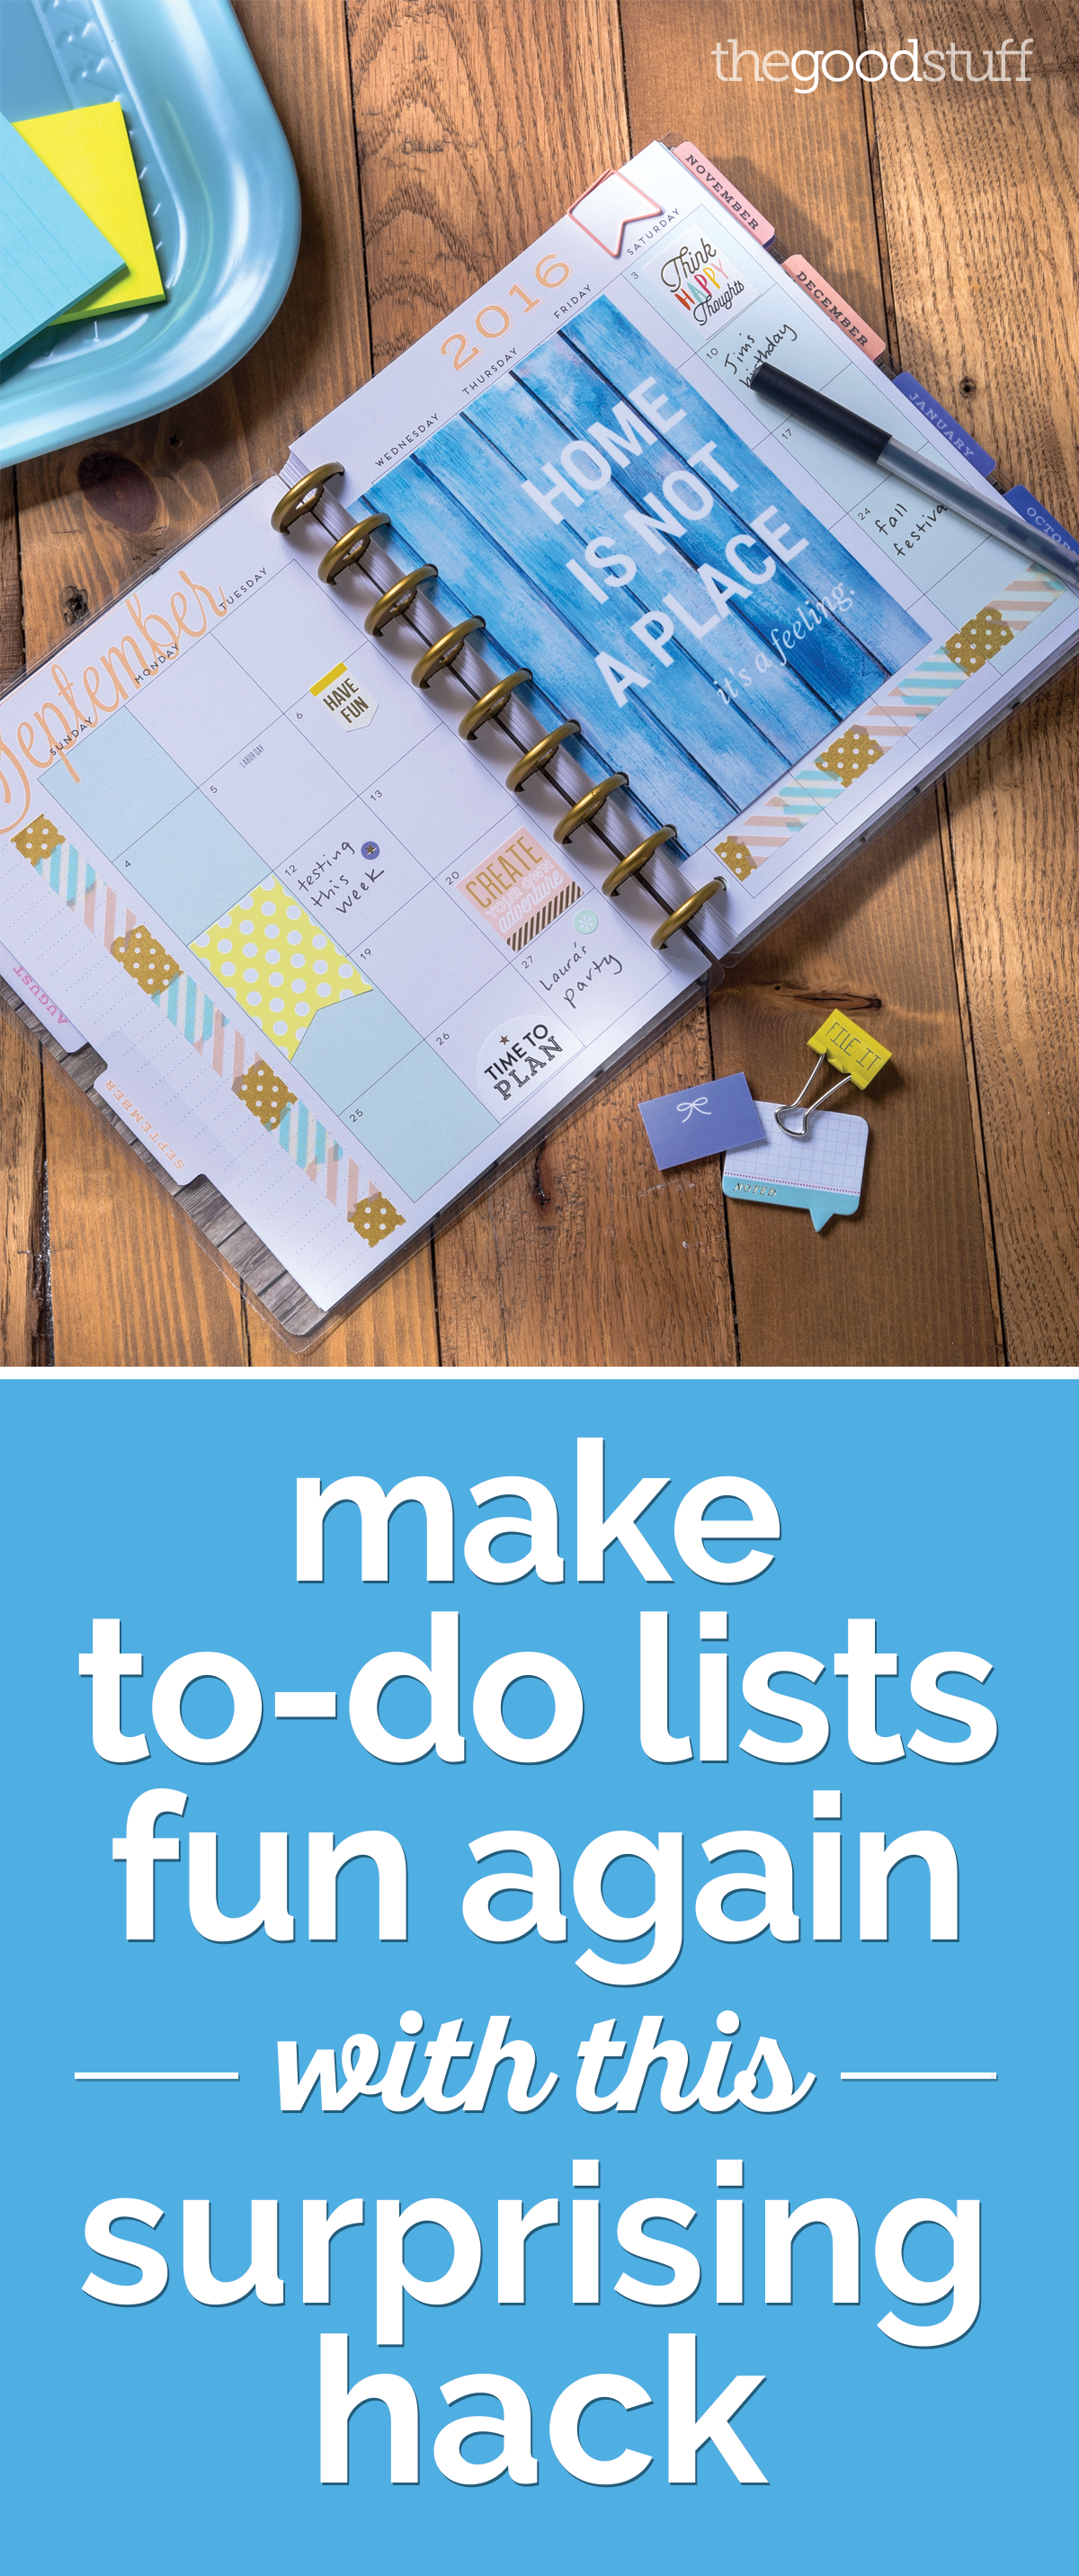 Make To-Do Lists Fun Again: A Happy Planner Guide | thegoodstuff